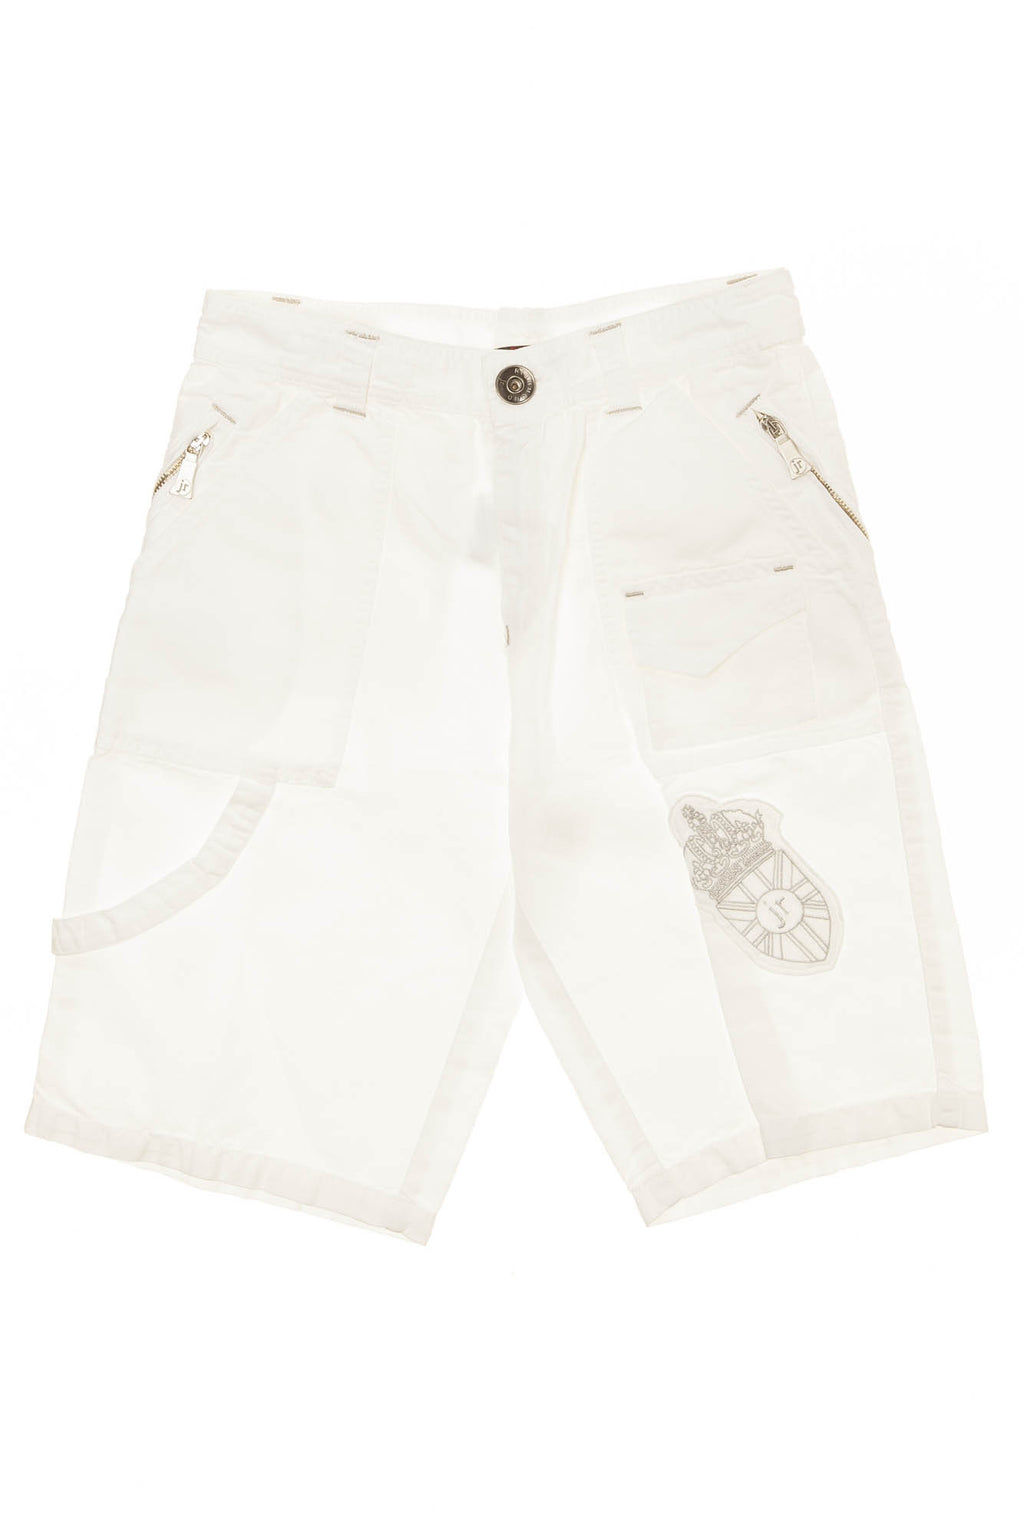 Richmond JR - White Cargo Shorts - 38